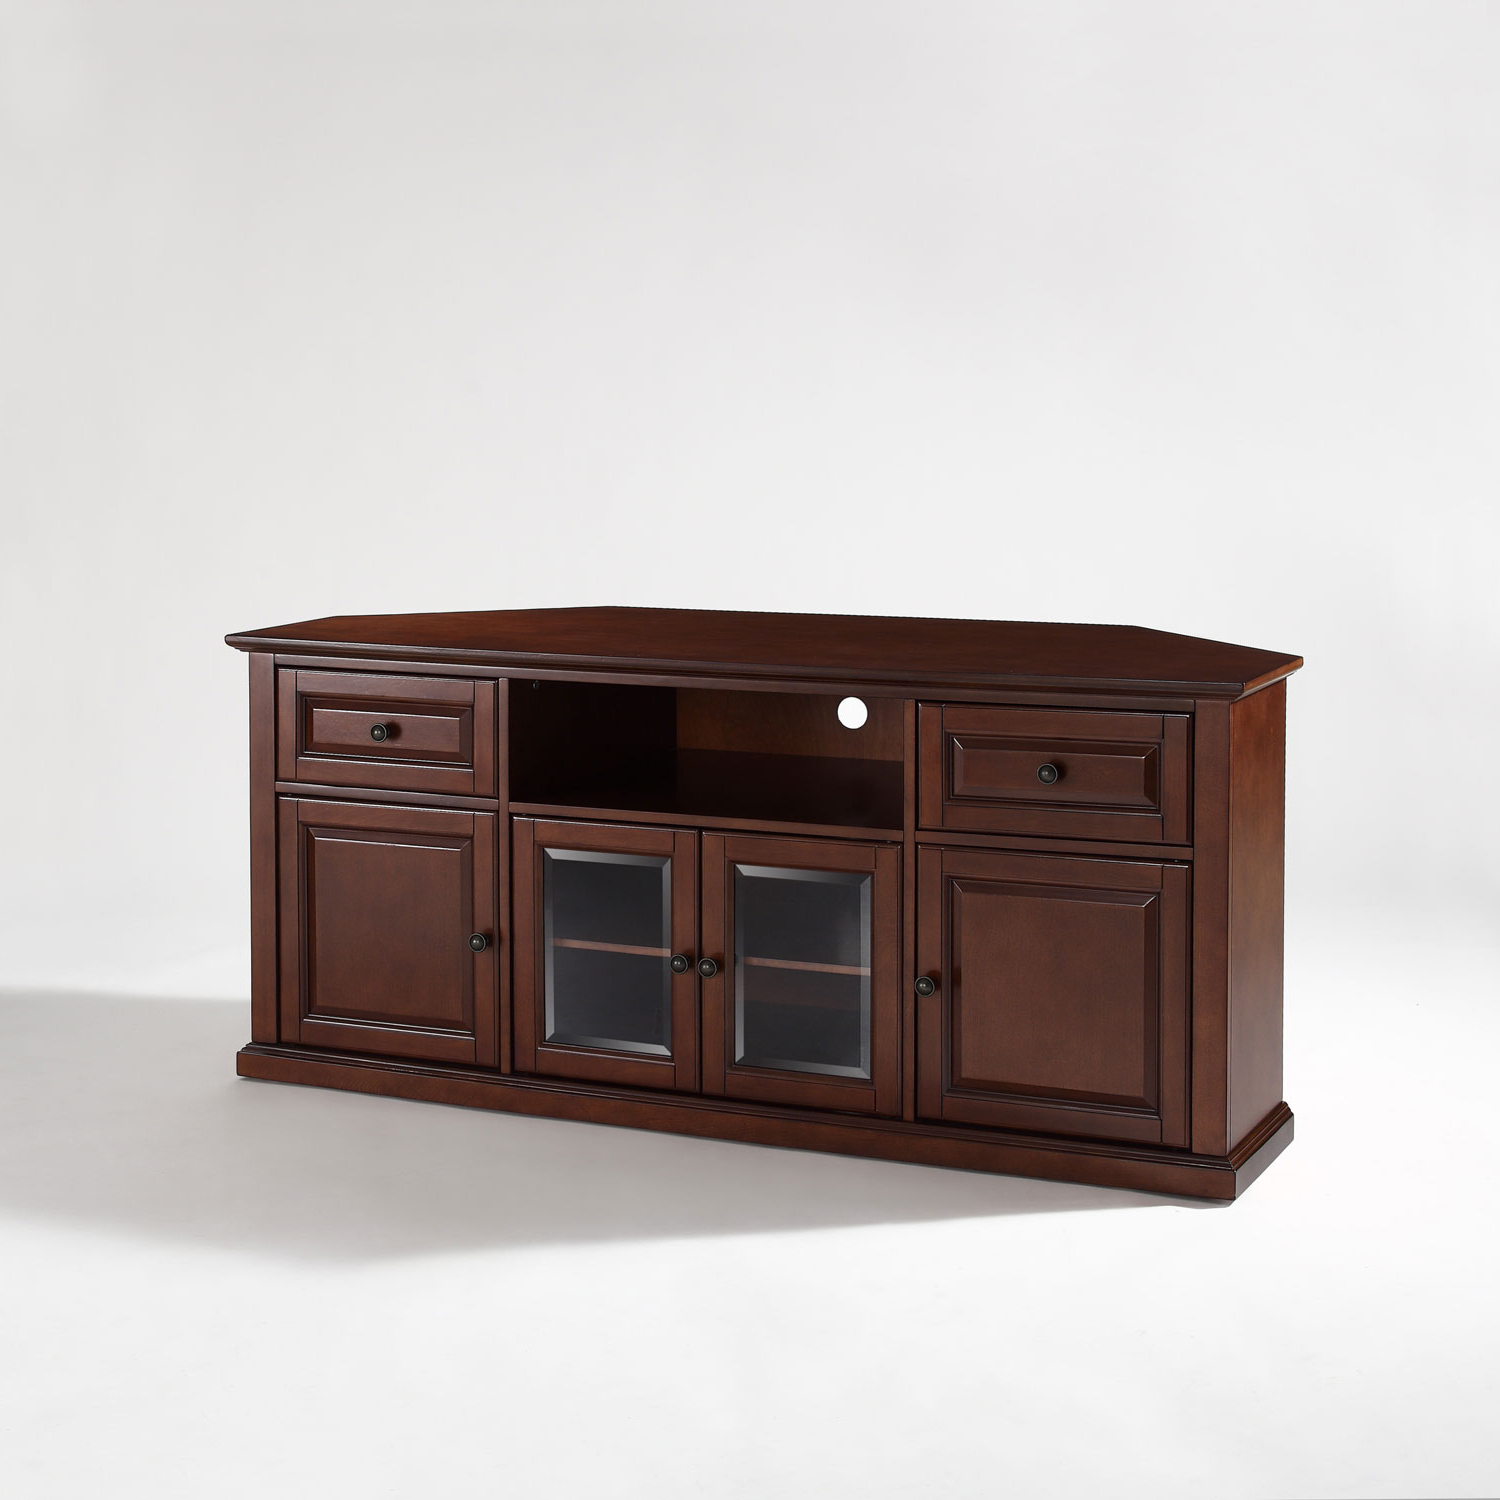 Trendy Crosley Furniture 60 Inch Corner Tv Stand In Vintage Mahogany Intended For Low Corner Tv Cabinets (View 15 of 20)